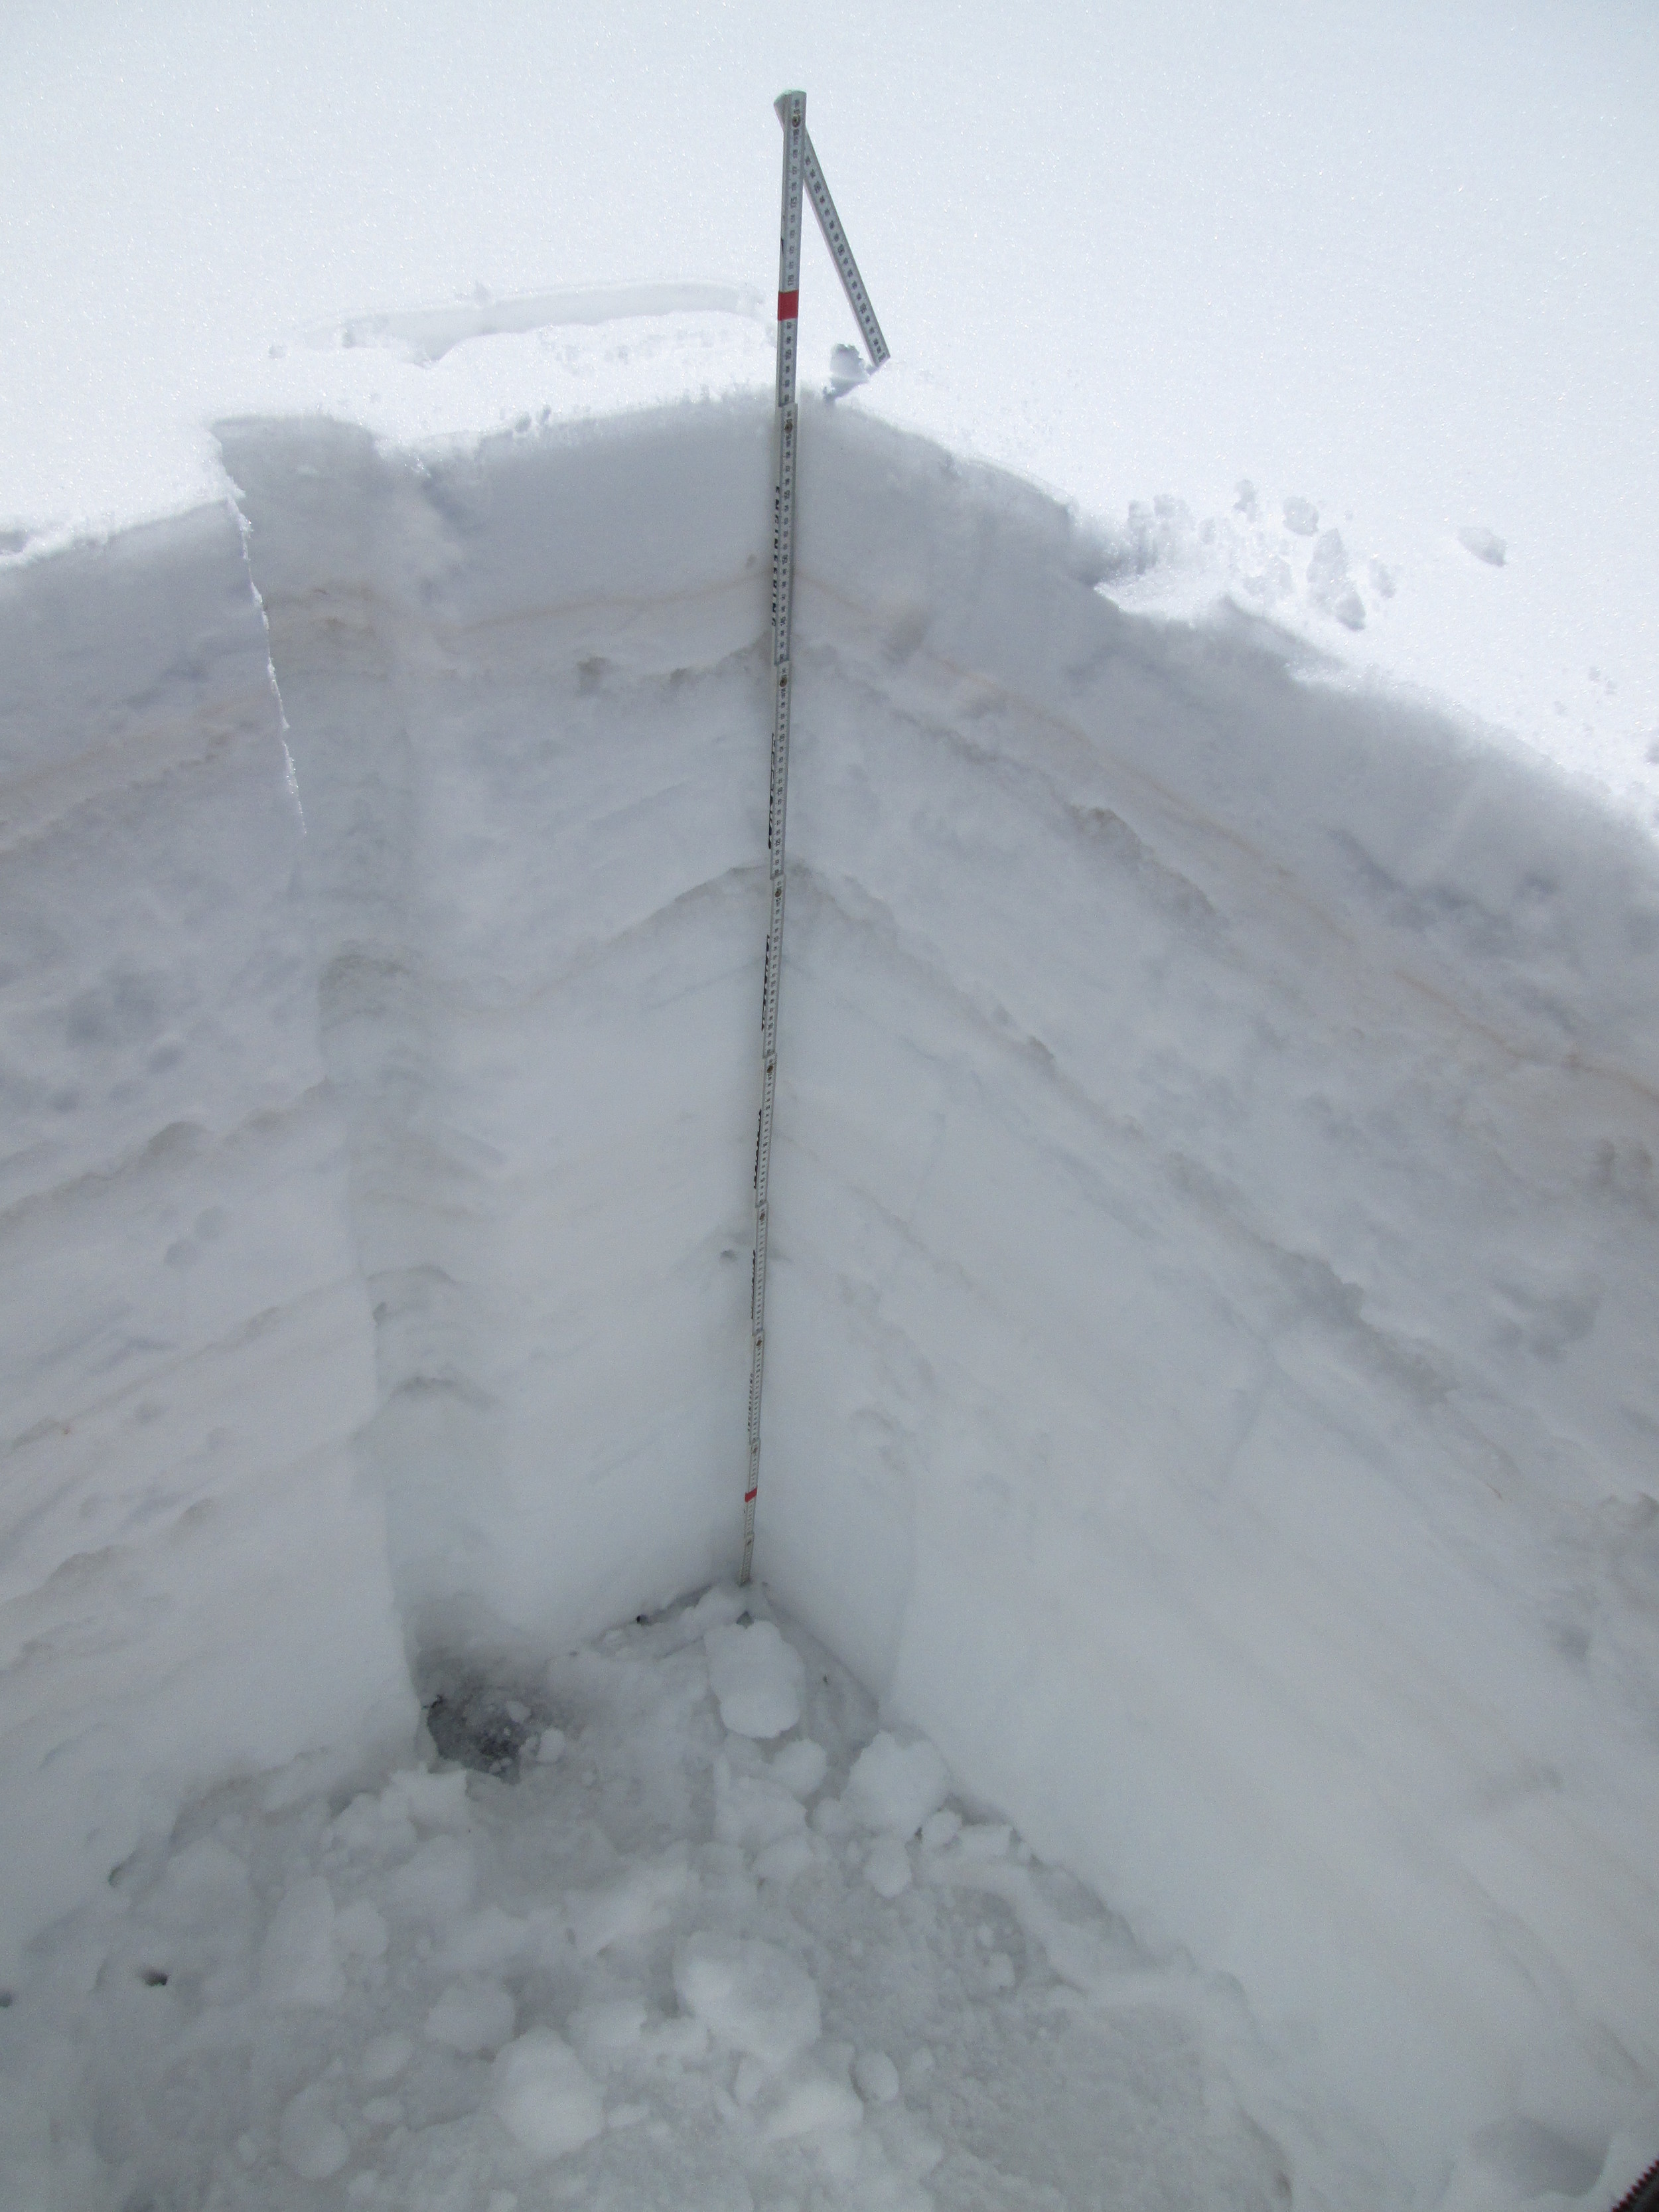 "The March 29 snow profile at the Wolf Creek Pass CODOS site.  Dust layer D3-WY2014 is clearly visible in a diffuse band 6"" below the snow surface.  Dust layer D2 may have been present in the thick layer of ice just below D3, but was not visible.  Dust layer D4 (March 30) fell onto the clean snow surface seen in this profile, significantly reducing snow albedo until fresh snowfall beginning today (April 2) began to bury D4.  Once re-exposed, radiative forcing in layer D4 will need to melt approximately 1"" of underlying SWE before merging with layer D3, reducing snow albedo even further."